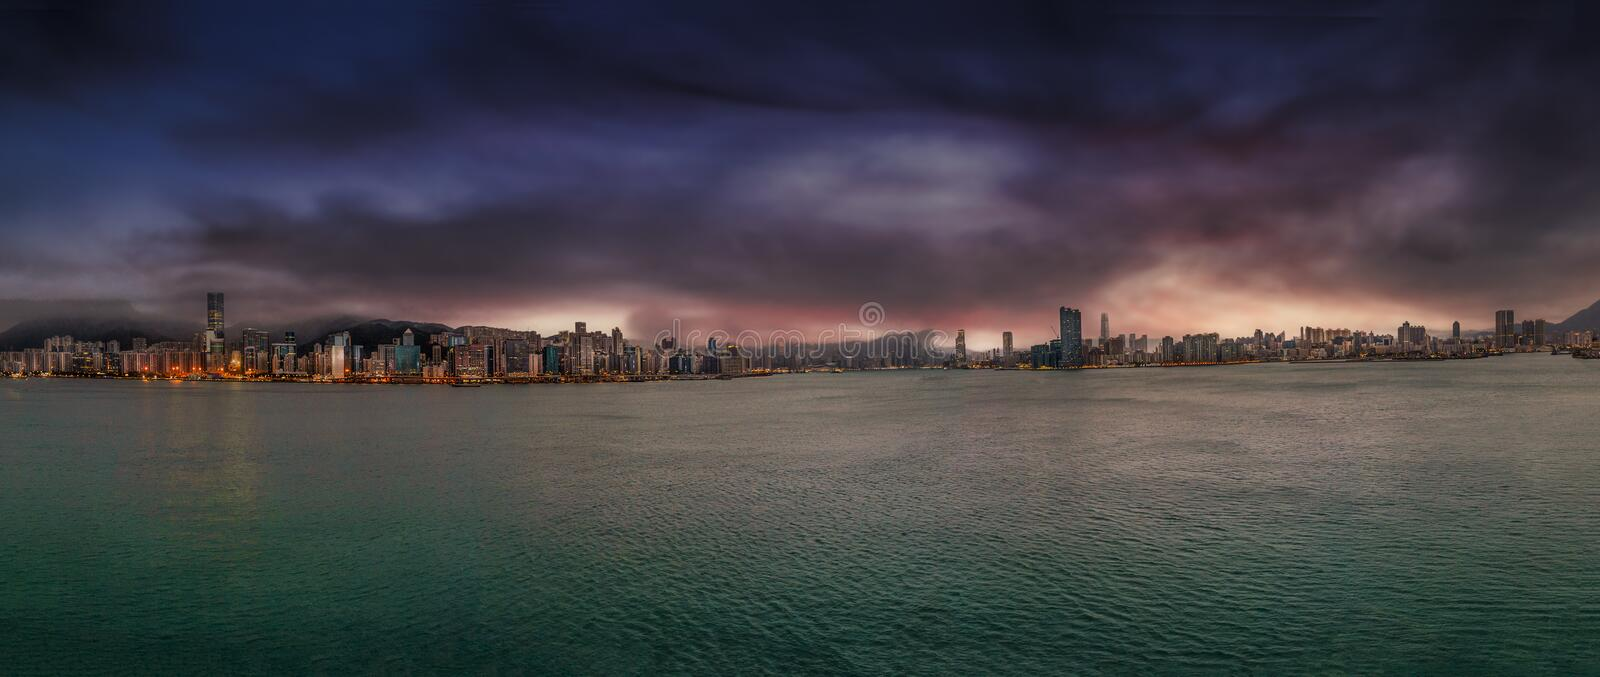 Hong Kong, China skyline panorama from across Victoria Harbor royalty free stock photo